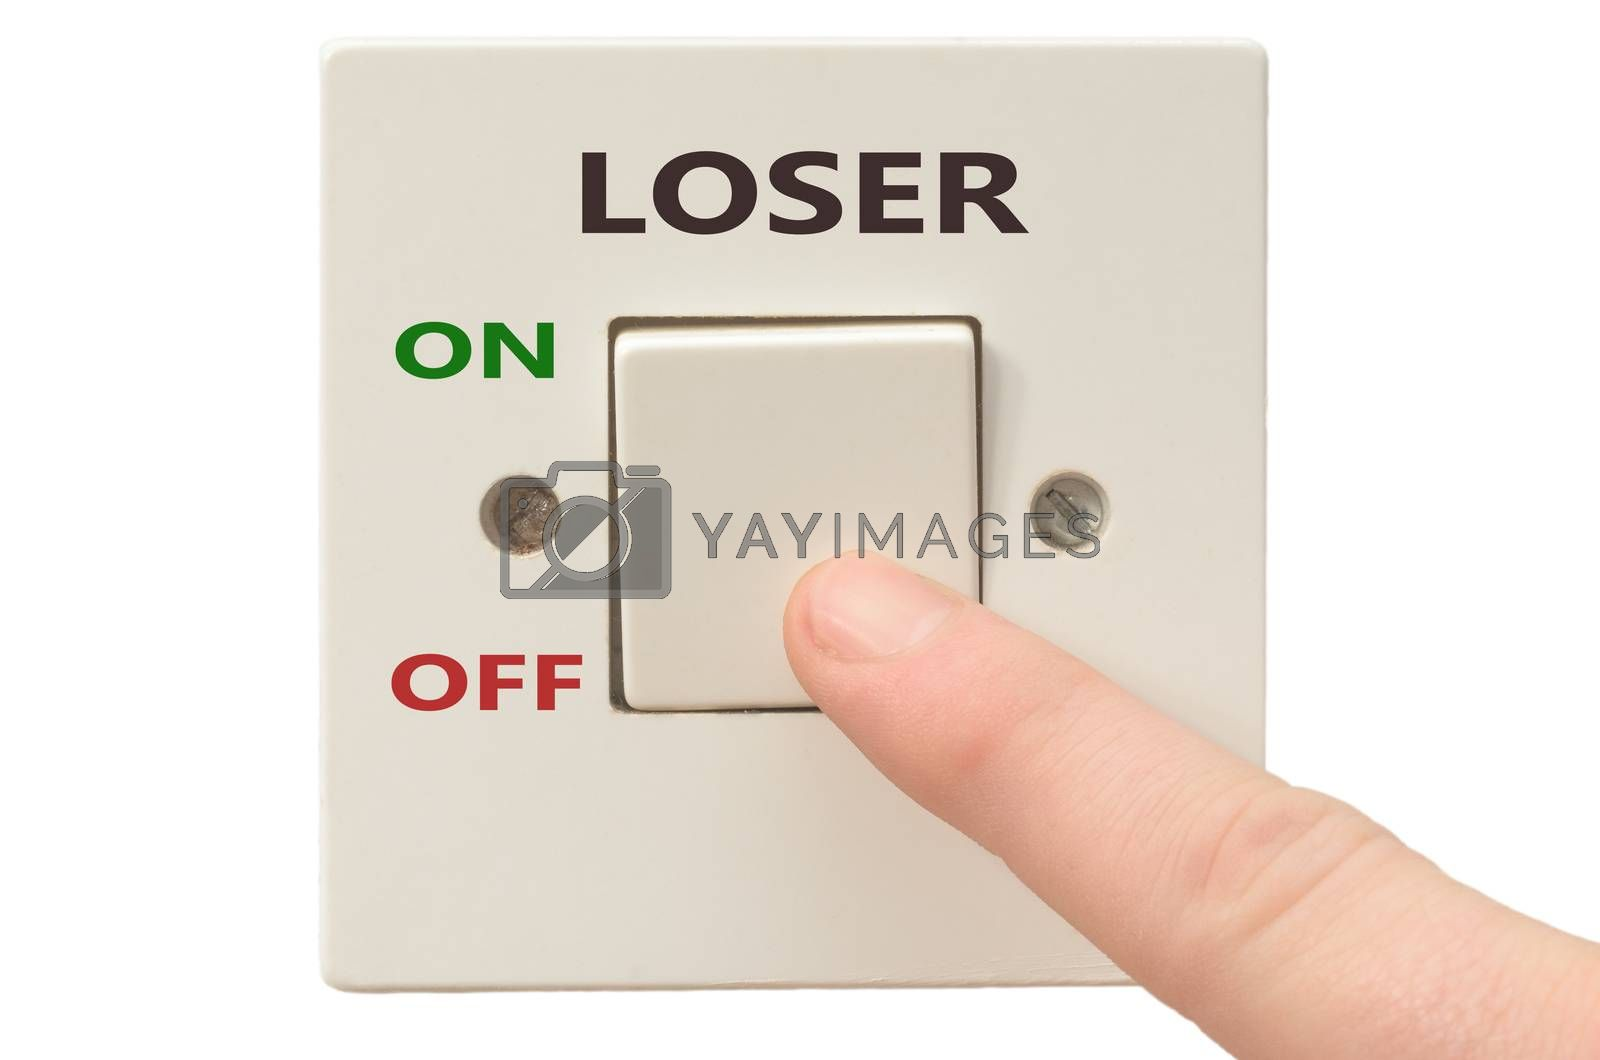 Turning off Loser with finger on electrical switch